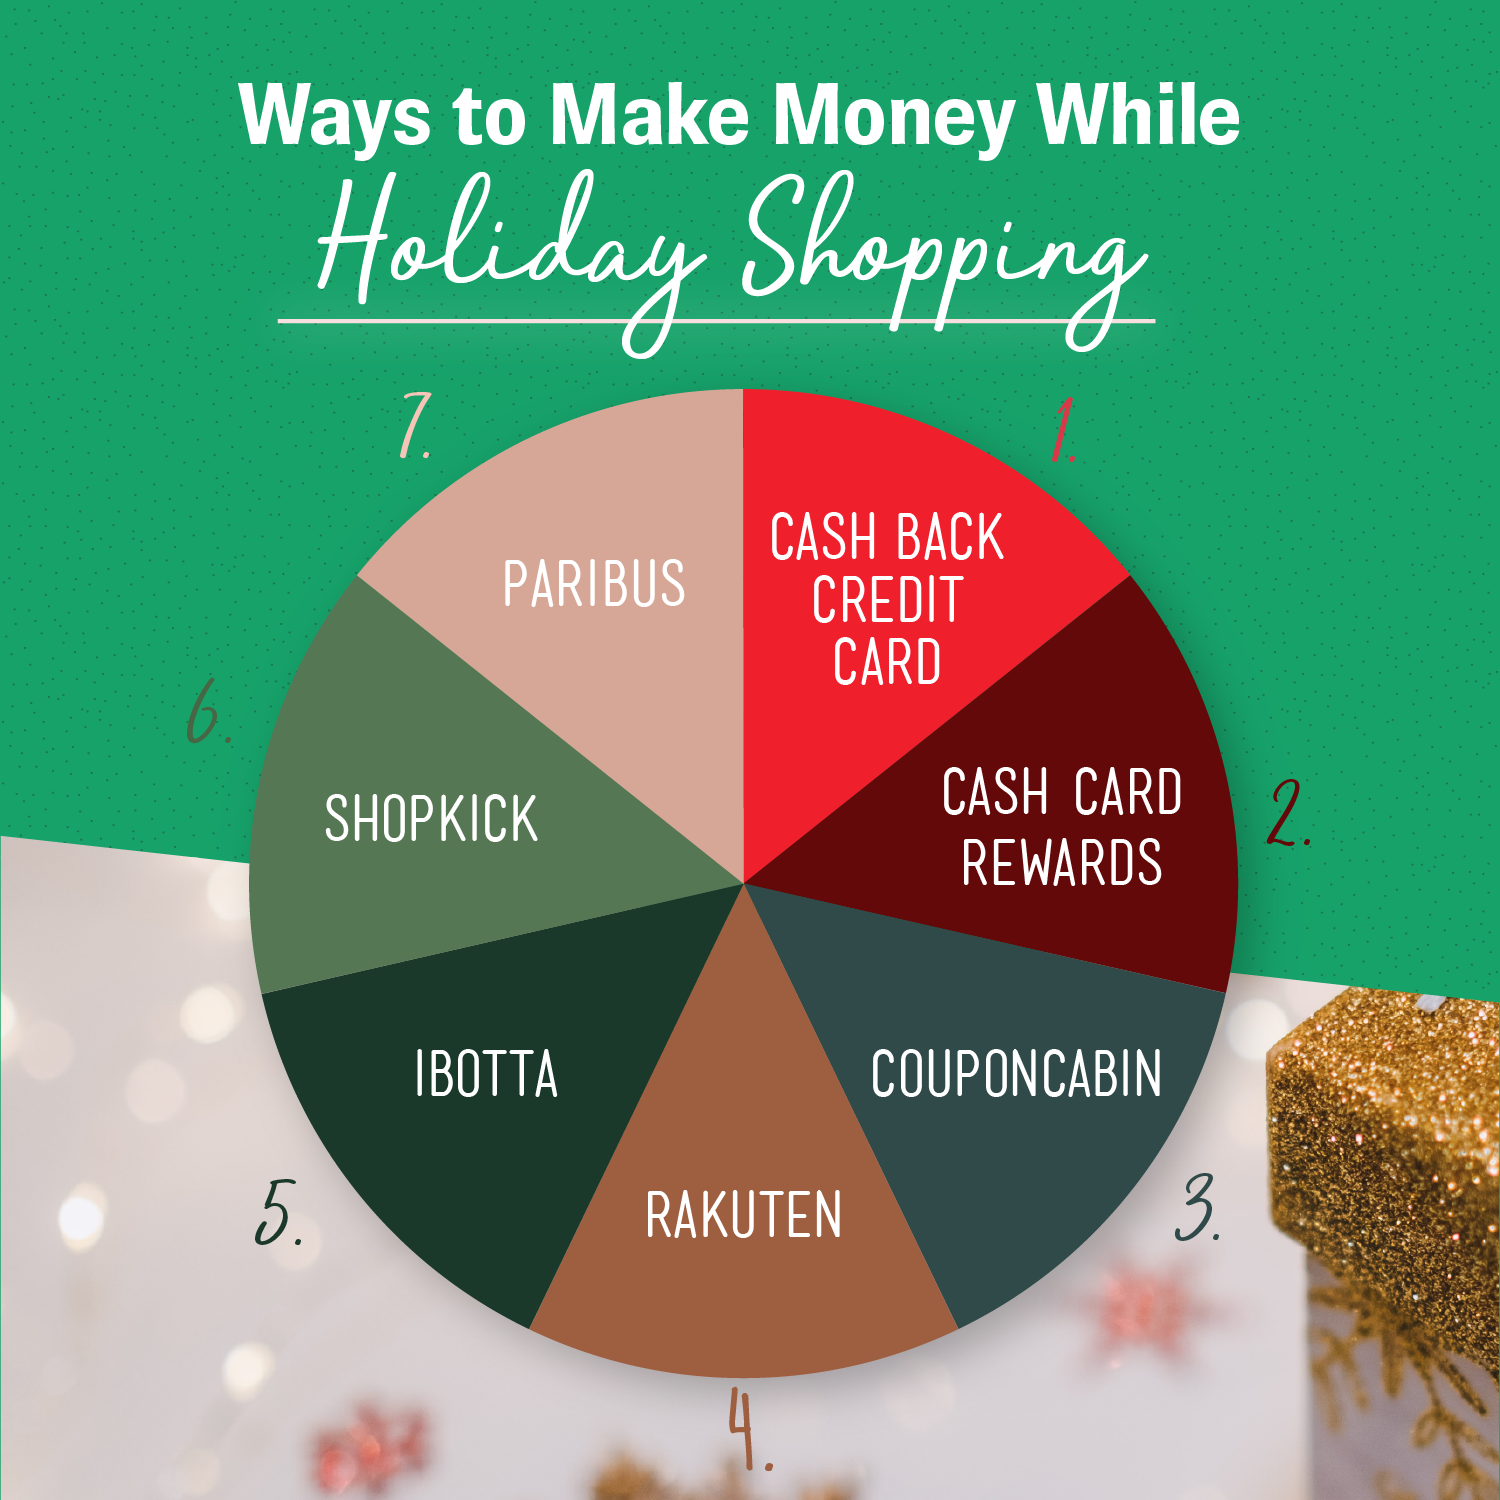 7 Ways to Make Money While Holiday Shopping Way to make